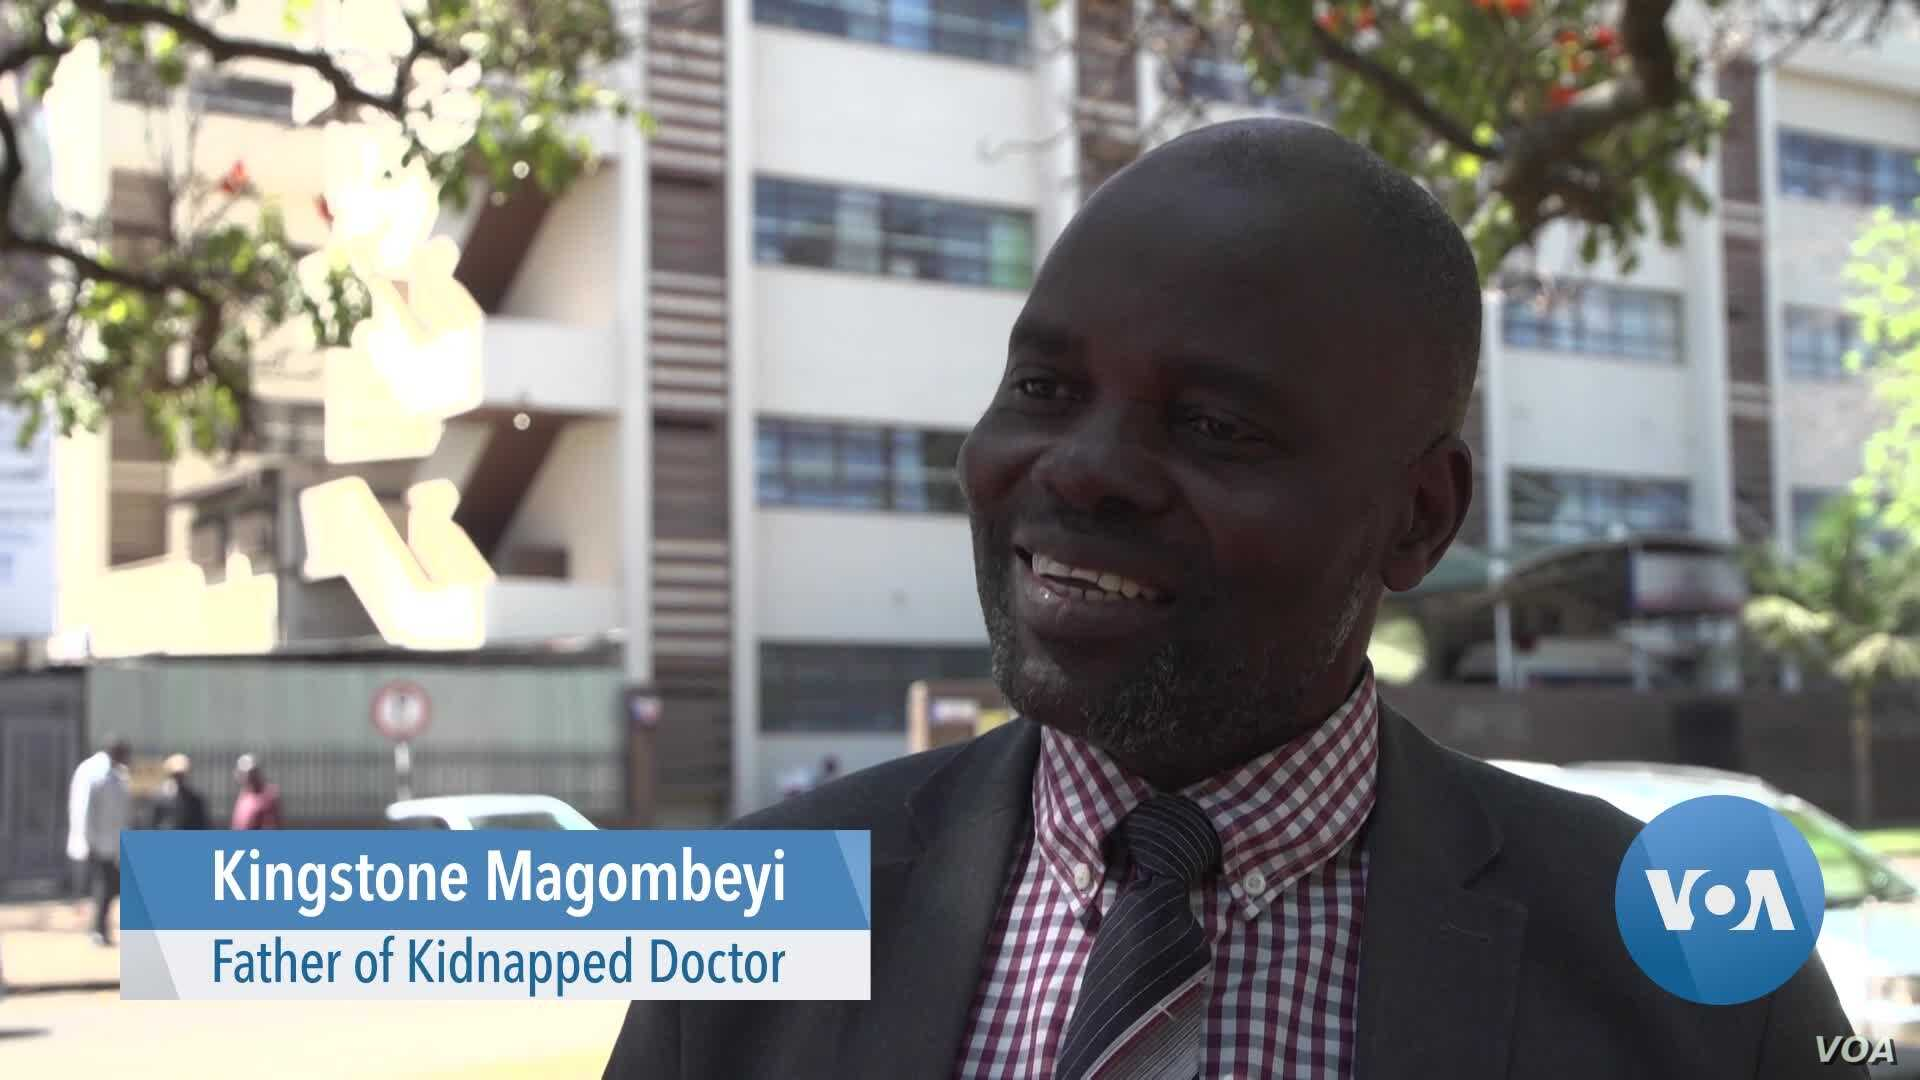 'Poisoned' Activist Zimbabwe Doctor Leaves Country for Medical Treatment